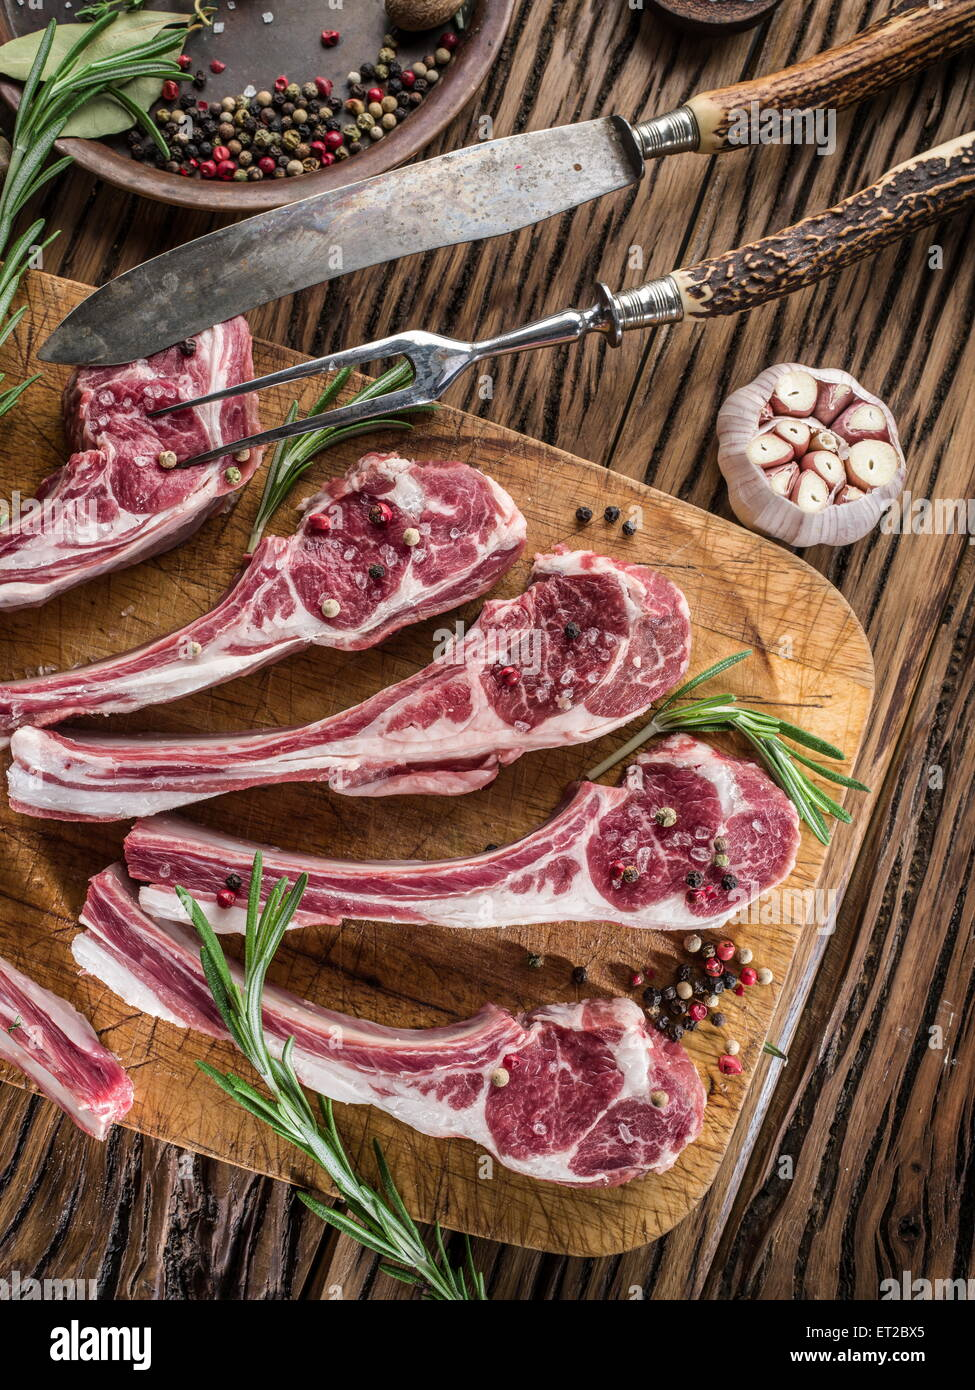 Raw lamb chops with garlic and herbs on the old wooden table. - Stock Image